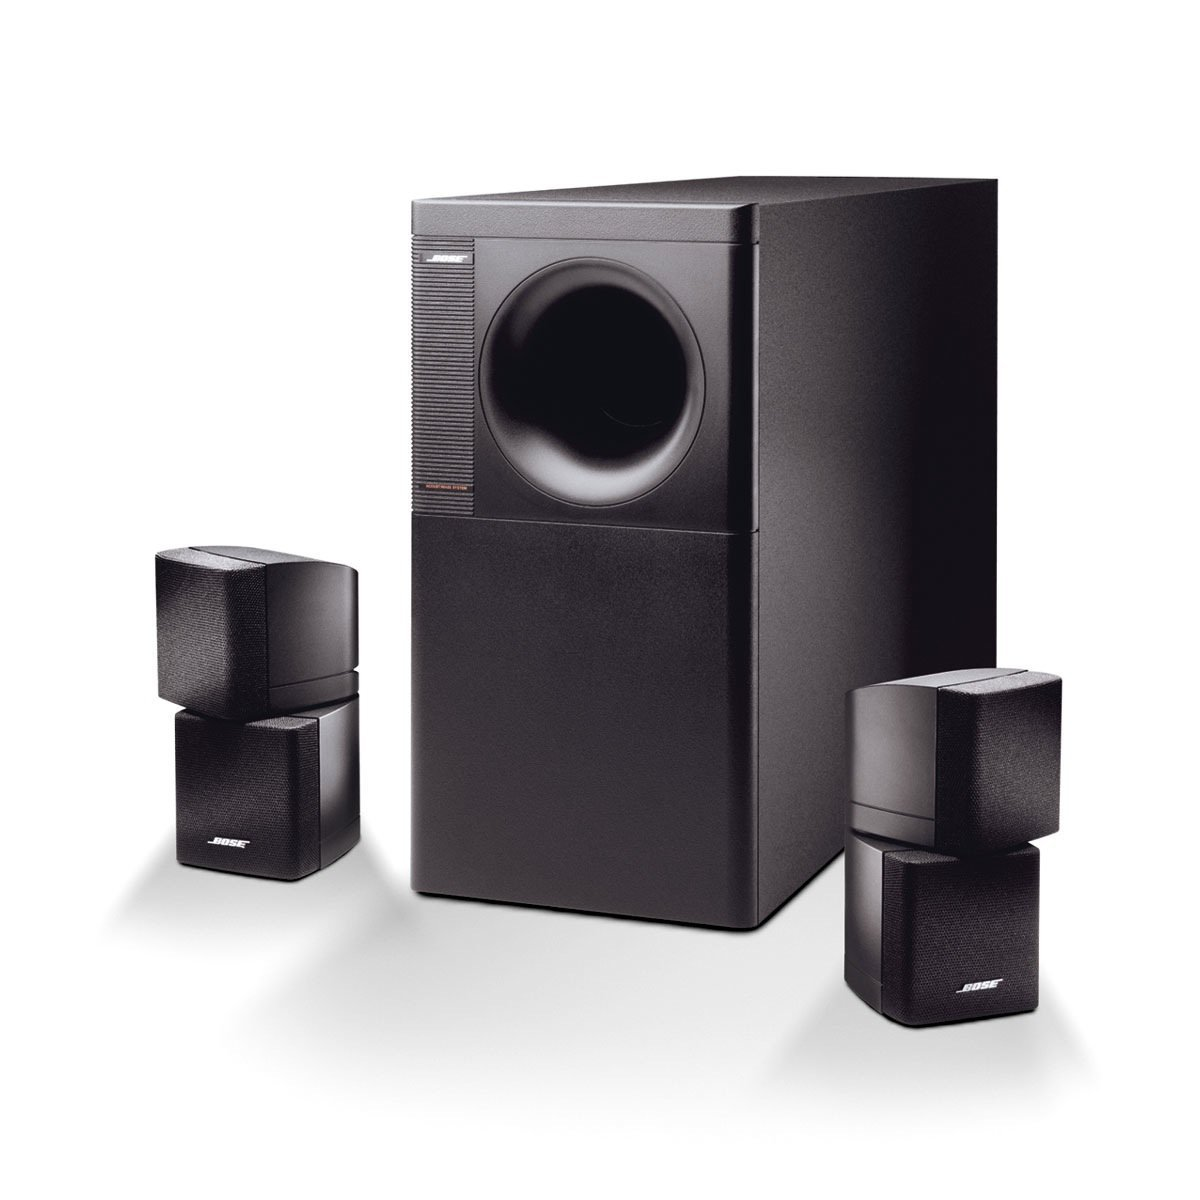 Bose Acoustimass Module Ii Home Theater Speaker Black  # Meuble Tv Home Cinema Integre But